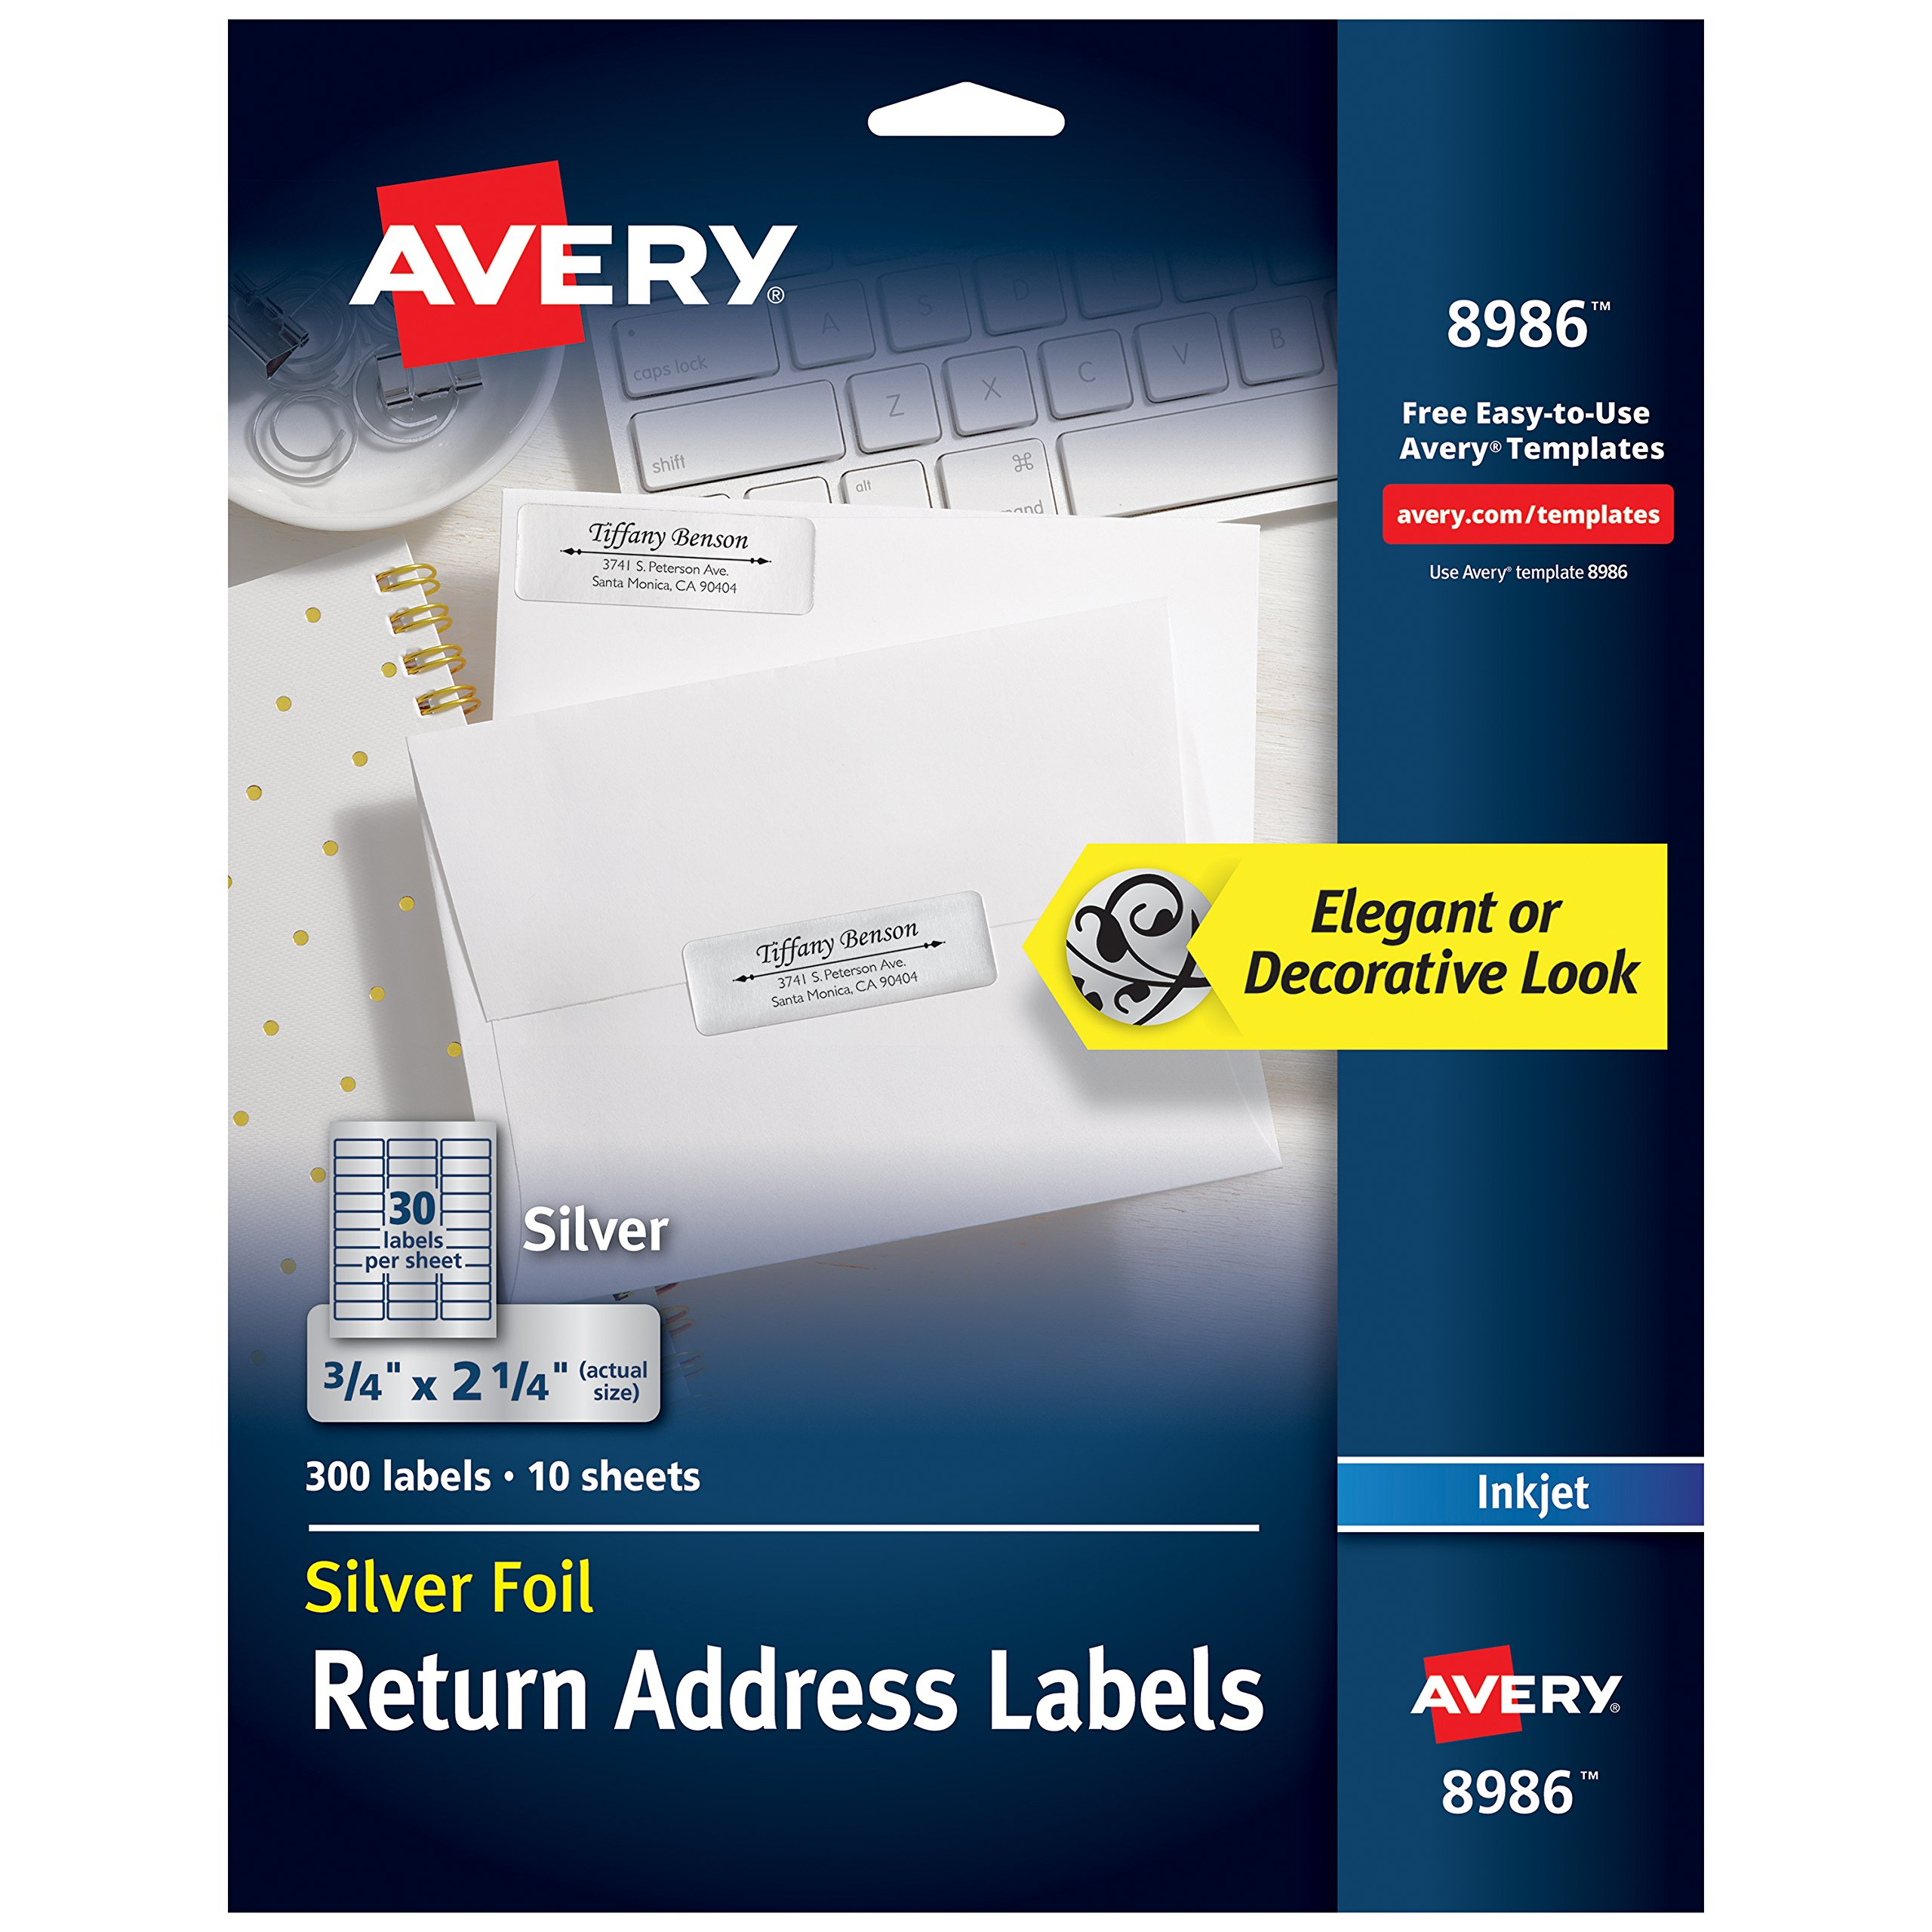 Avery Silver Address Labels for Inkjet Printers, 3/4'' x 2-1/4'', 300 Labels (8986)